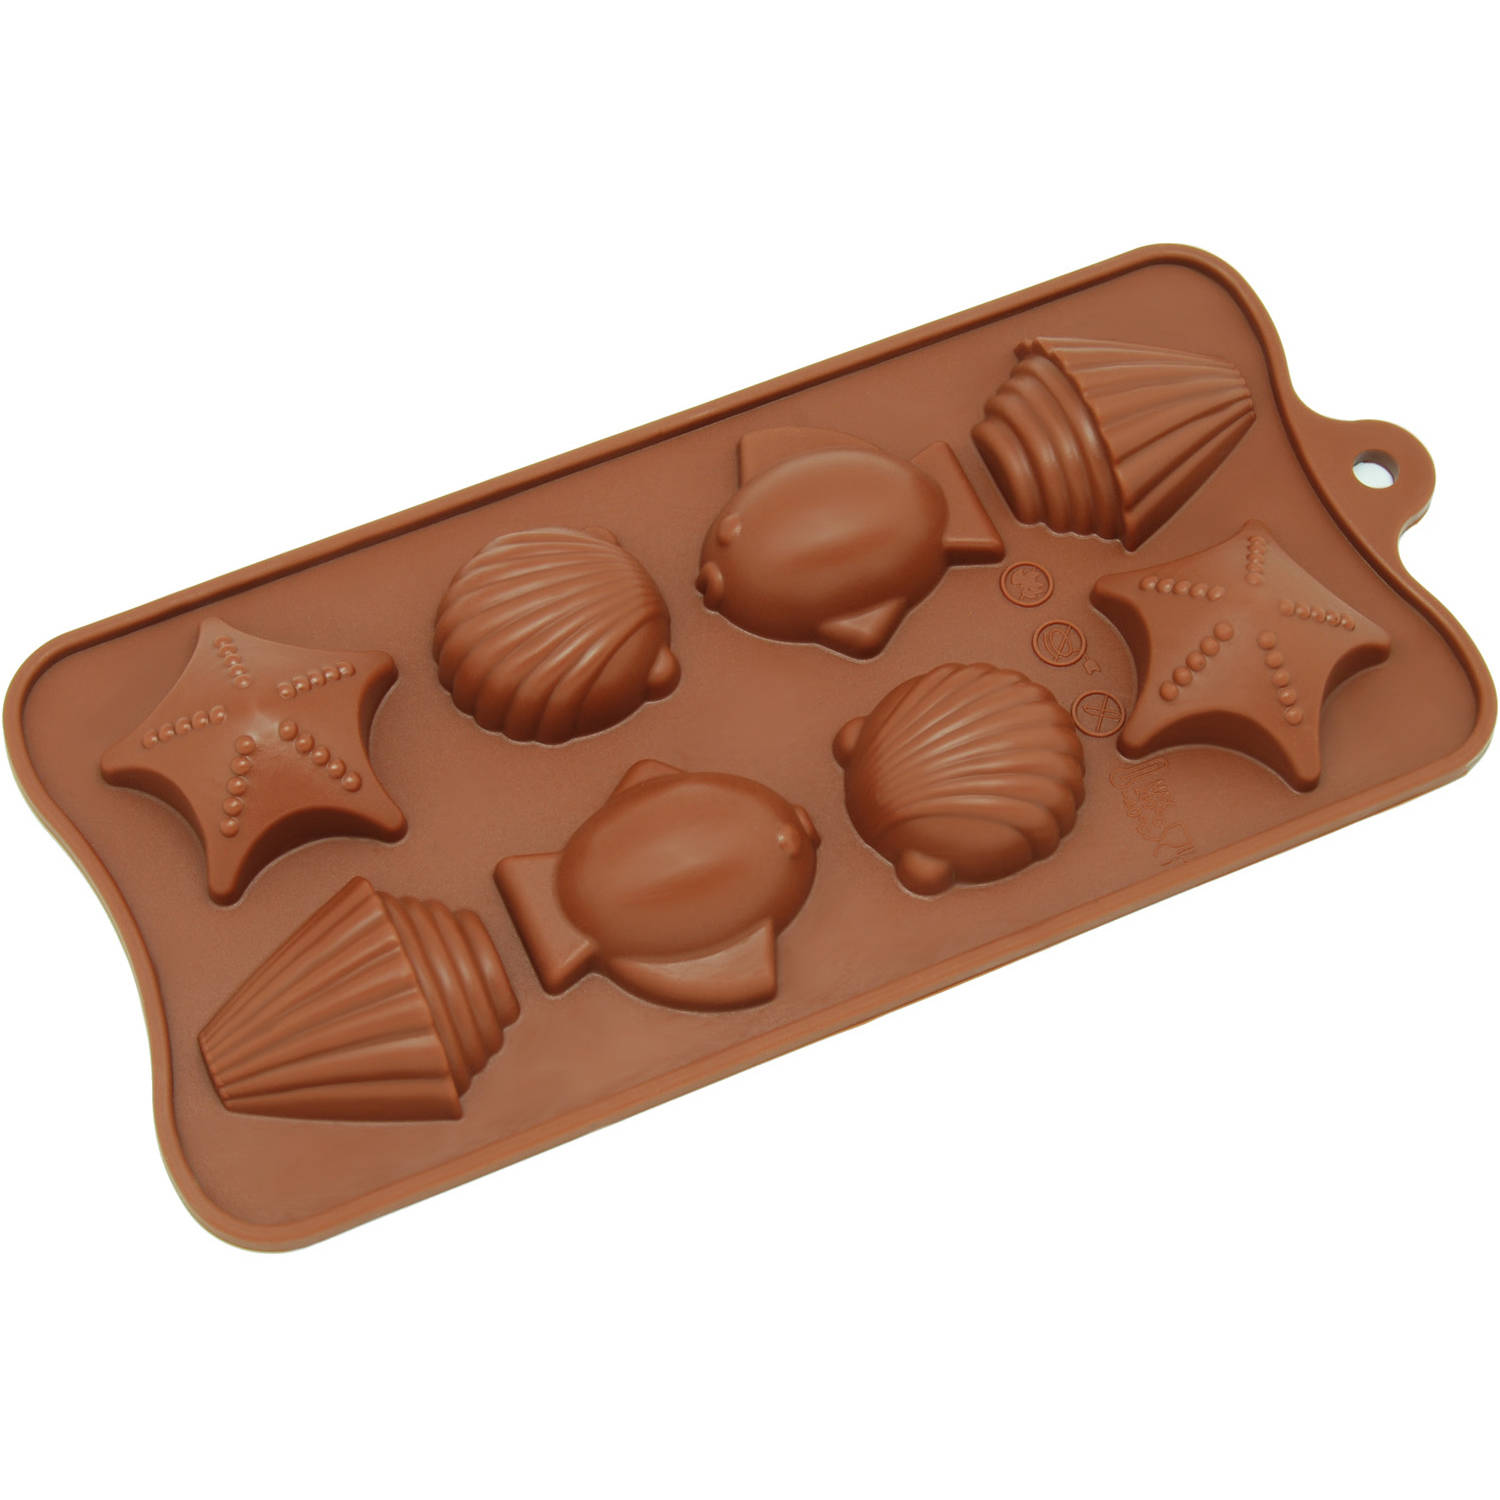 Freshware 8-Cavity Seashell, Fish and Seastar Silicone Mold for Chocolate, Candy and Gummy, CB-603BR